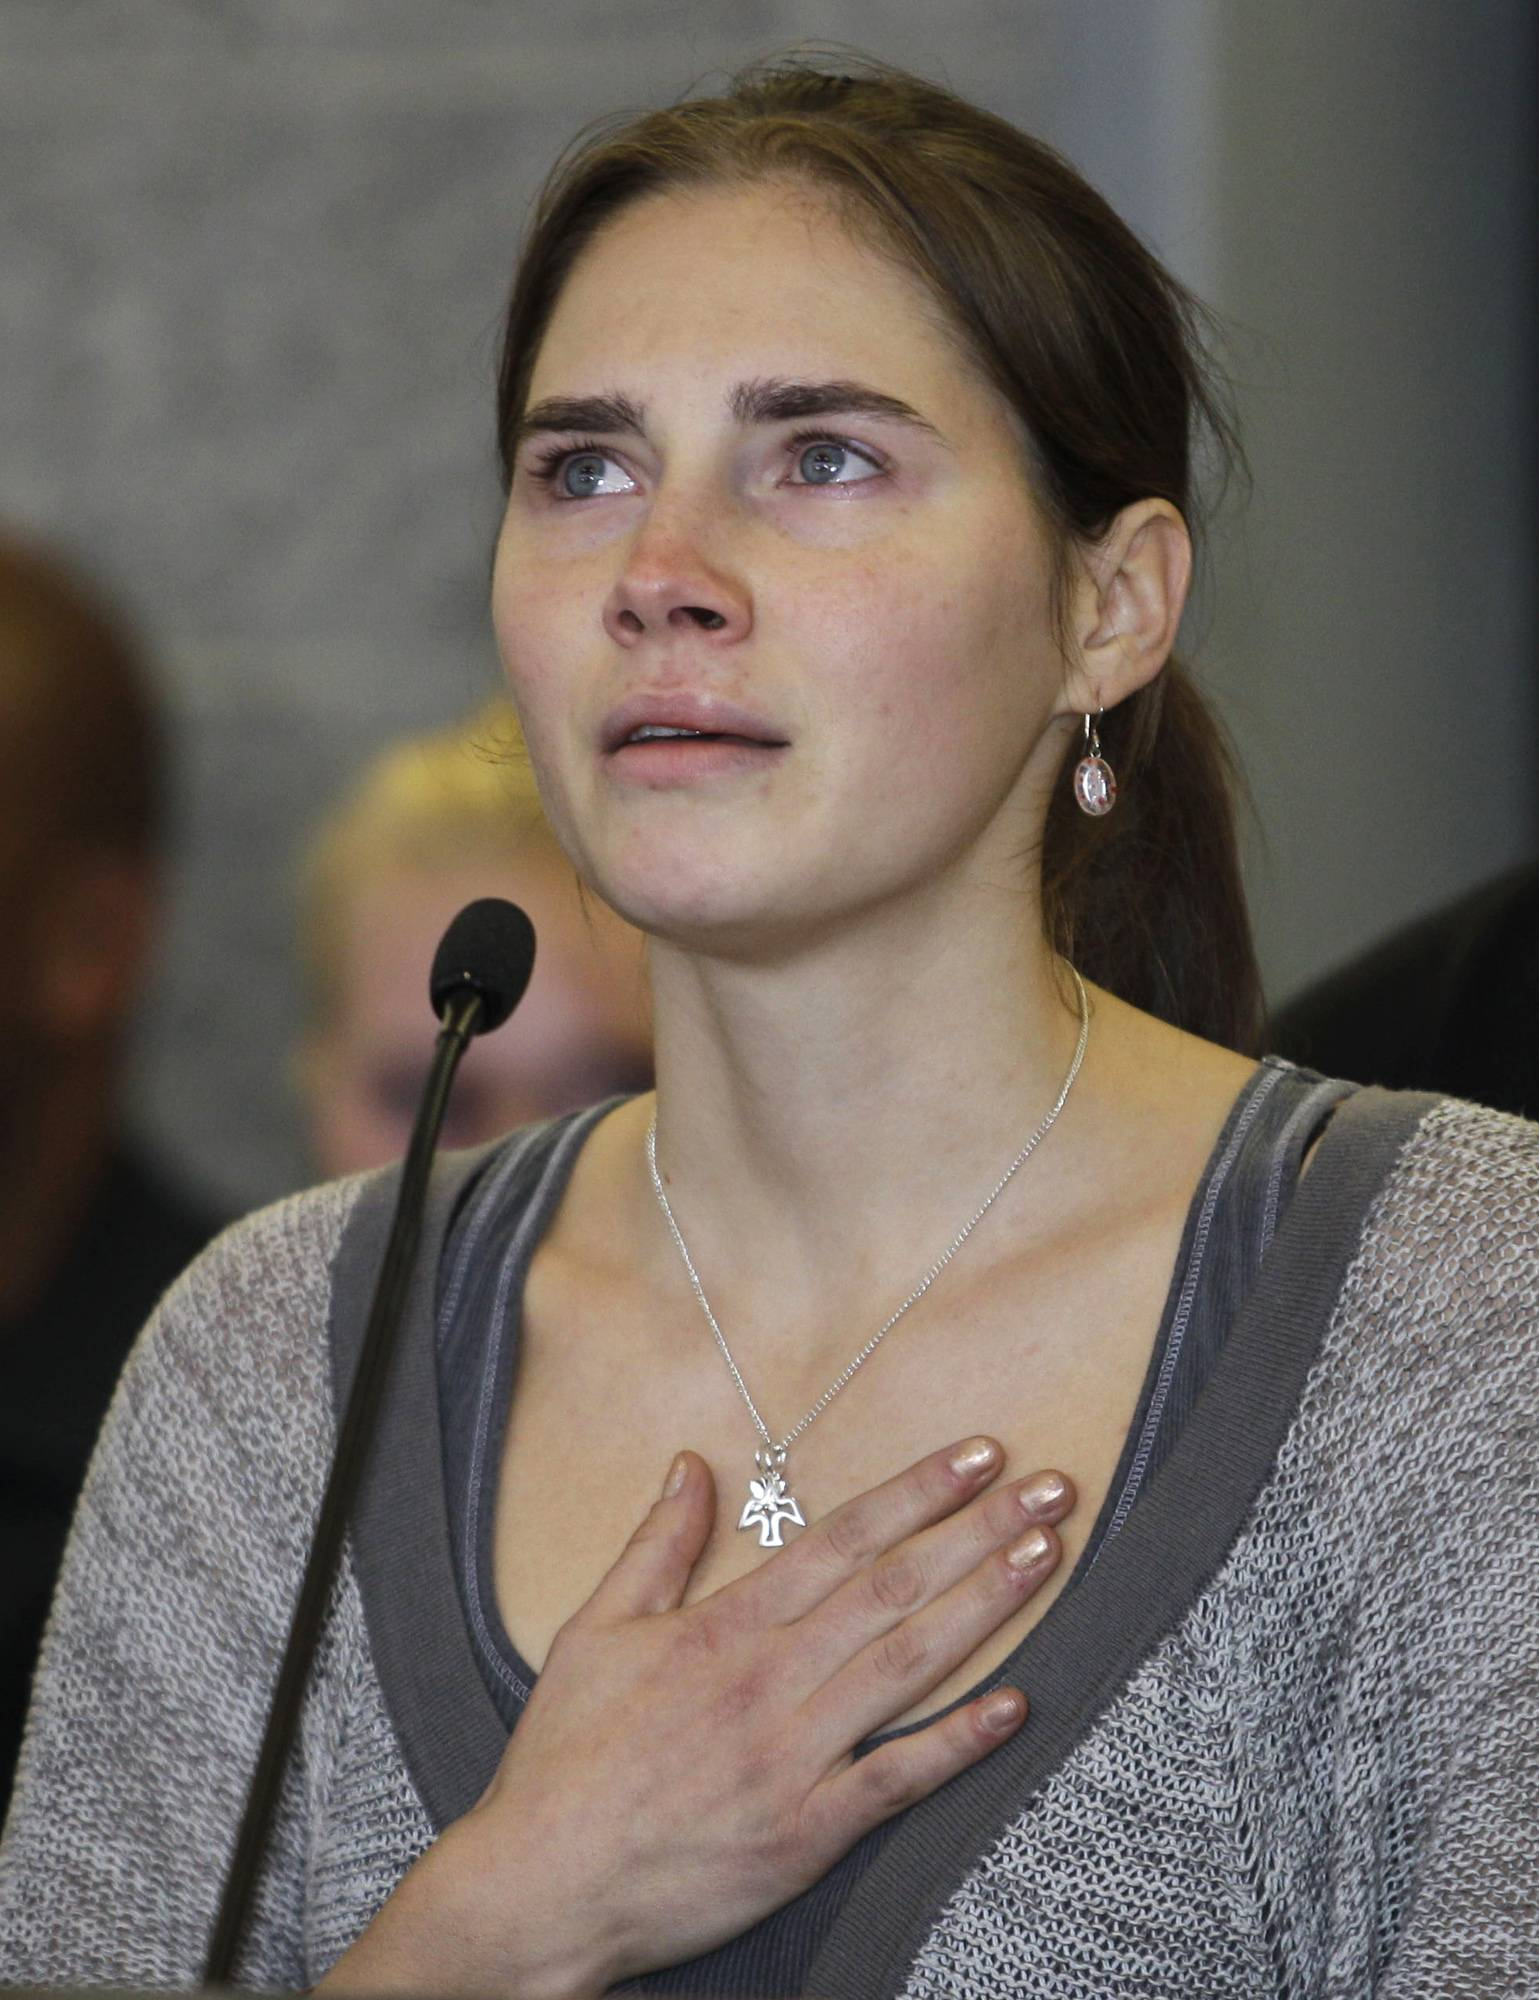 A court in Florence that convicted Amanda Knox in her British roommate's 2007 murder says the wounds indicate multiple aggressors, and that the two exchange students fought over money the night of the murder. The appellate court on Tuesday, April 29, 2014, issued a 337-page explanation for its January guilty verdicts against Knox and her former boyfriend Raffaele Sollecito.